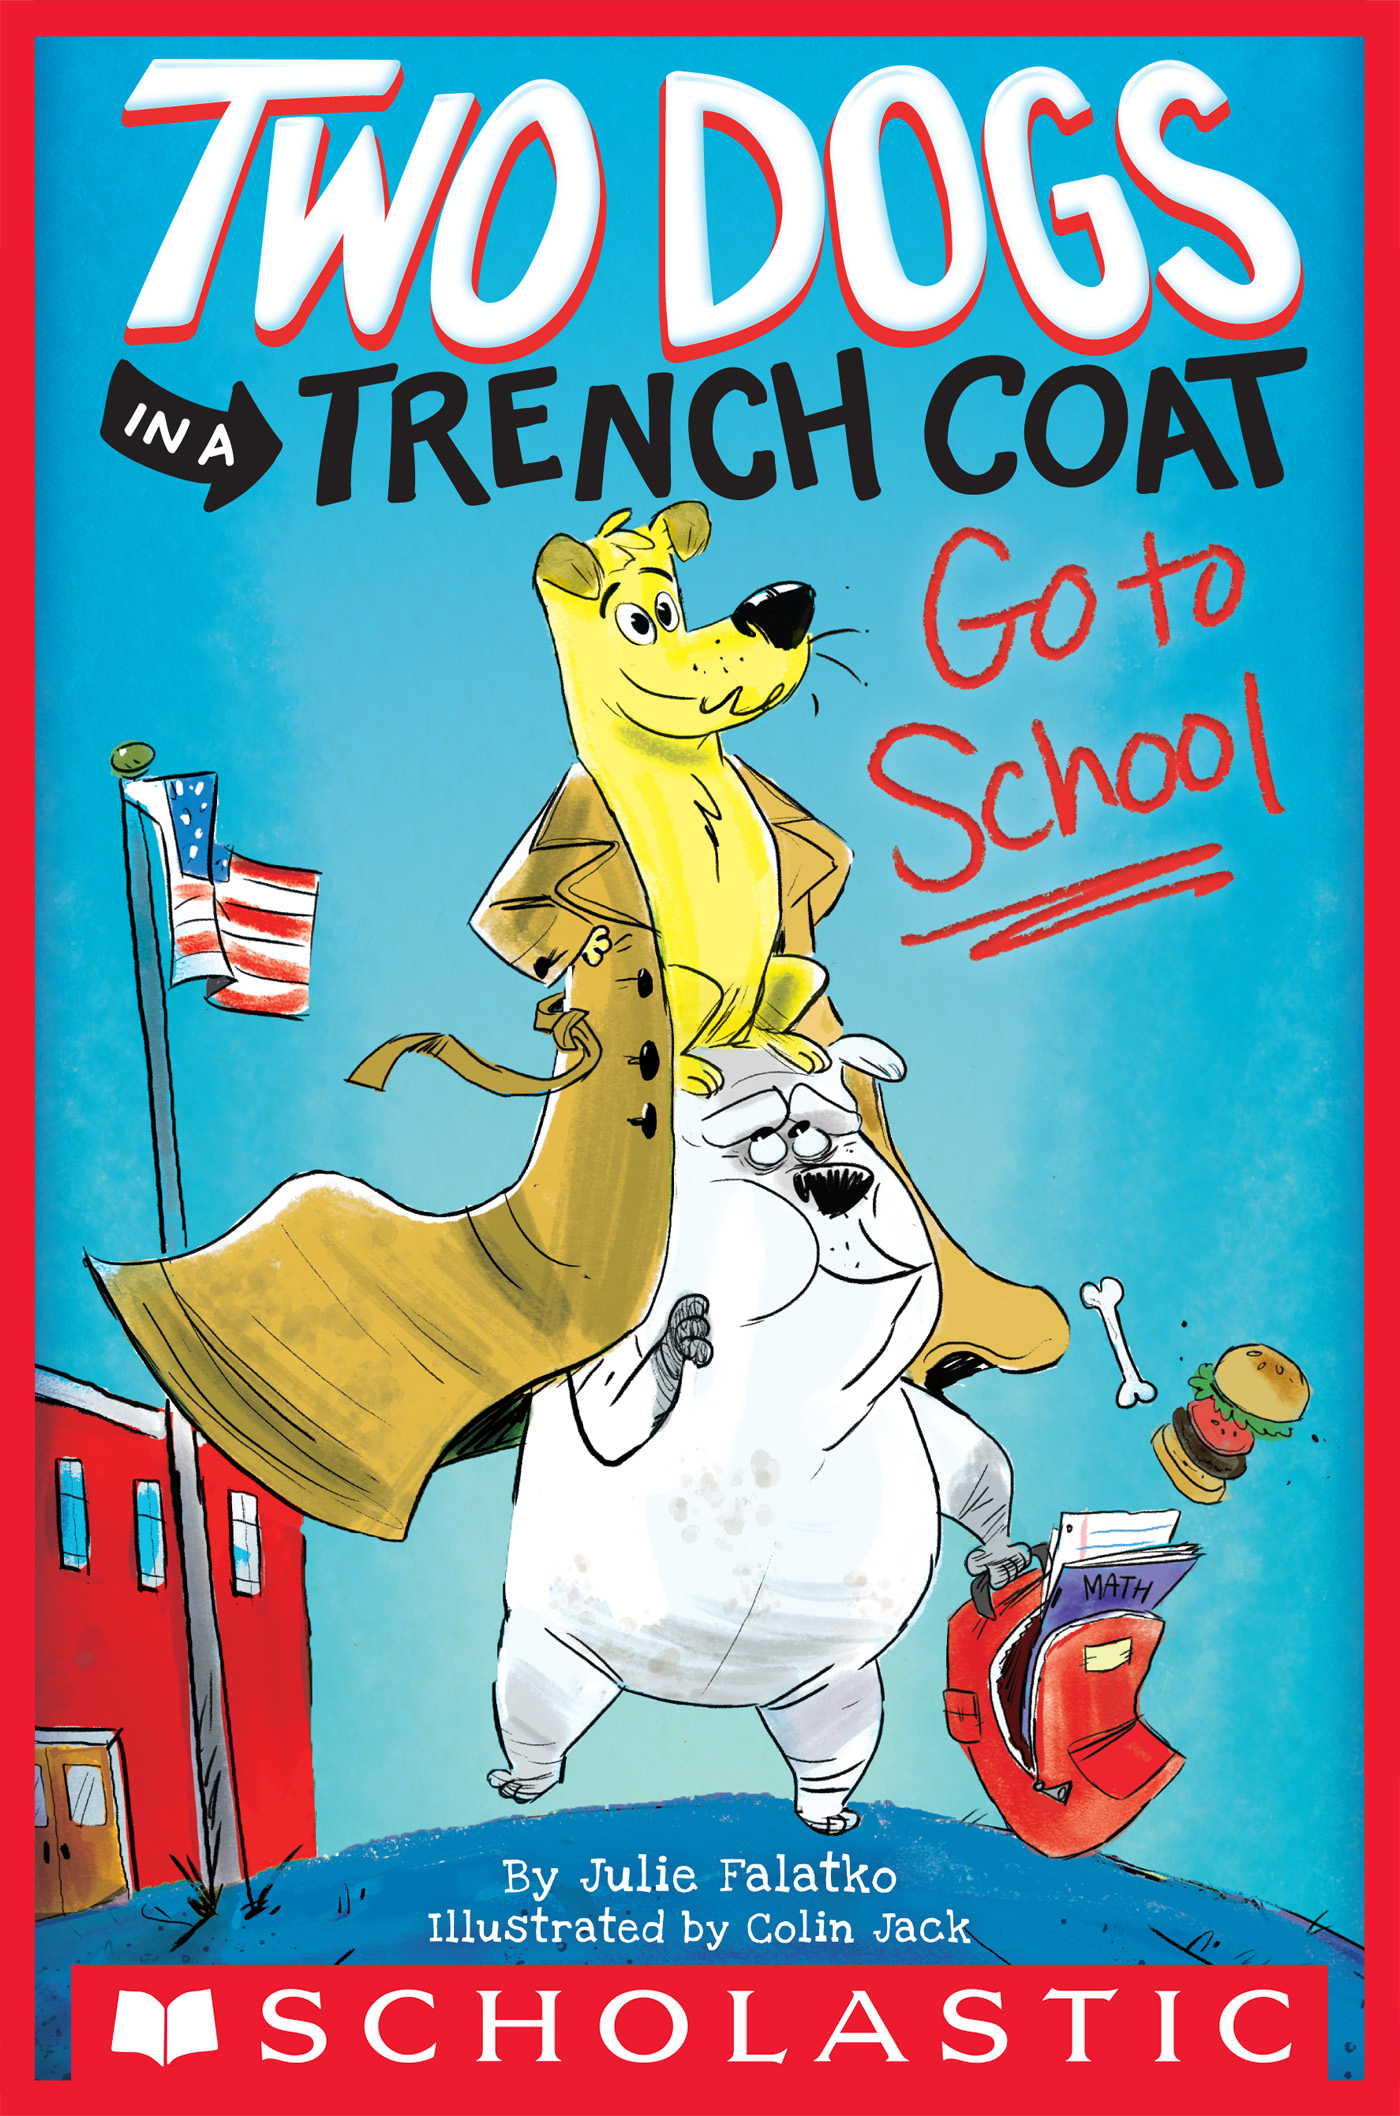 Two Dogs in a Trench Coat Go to School (Two Dogs in a Trench Coat #1) [electronic resource]